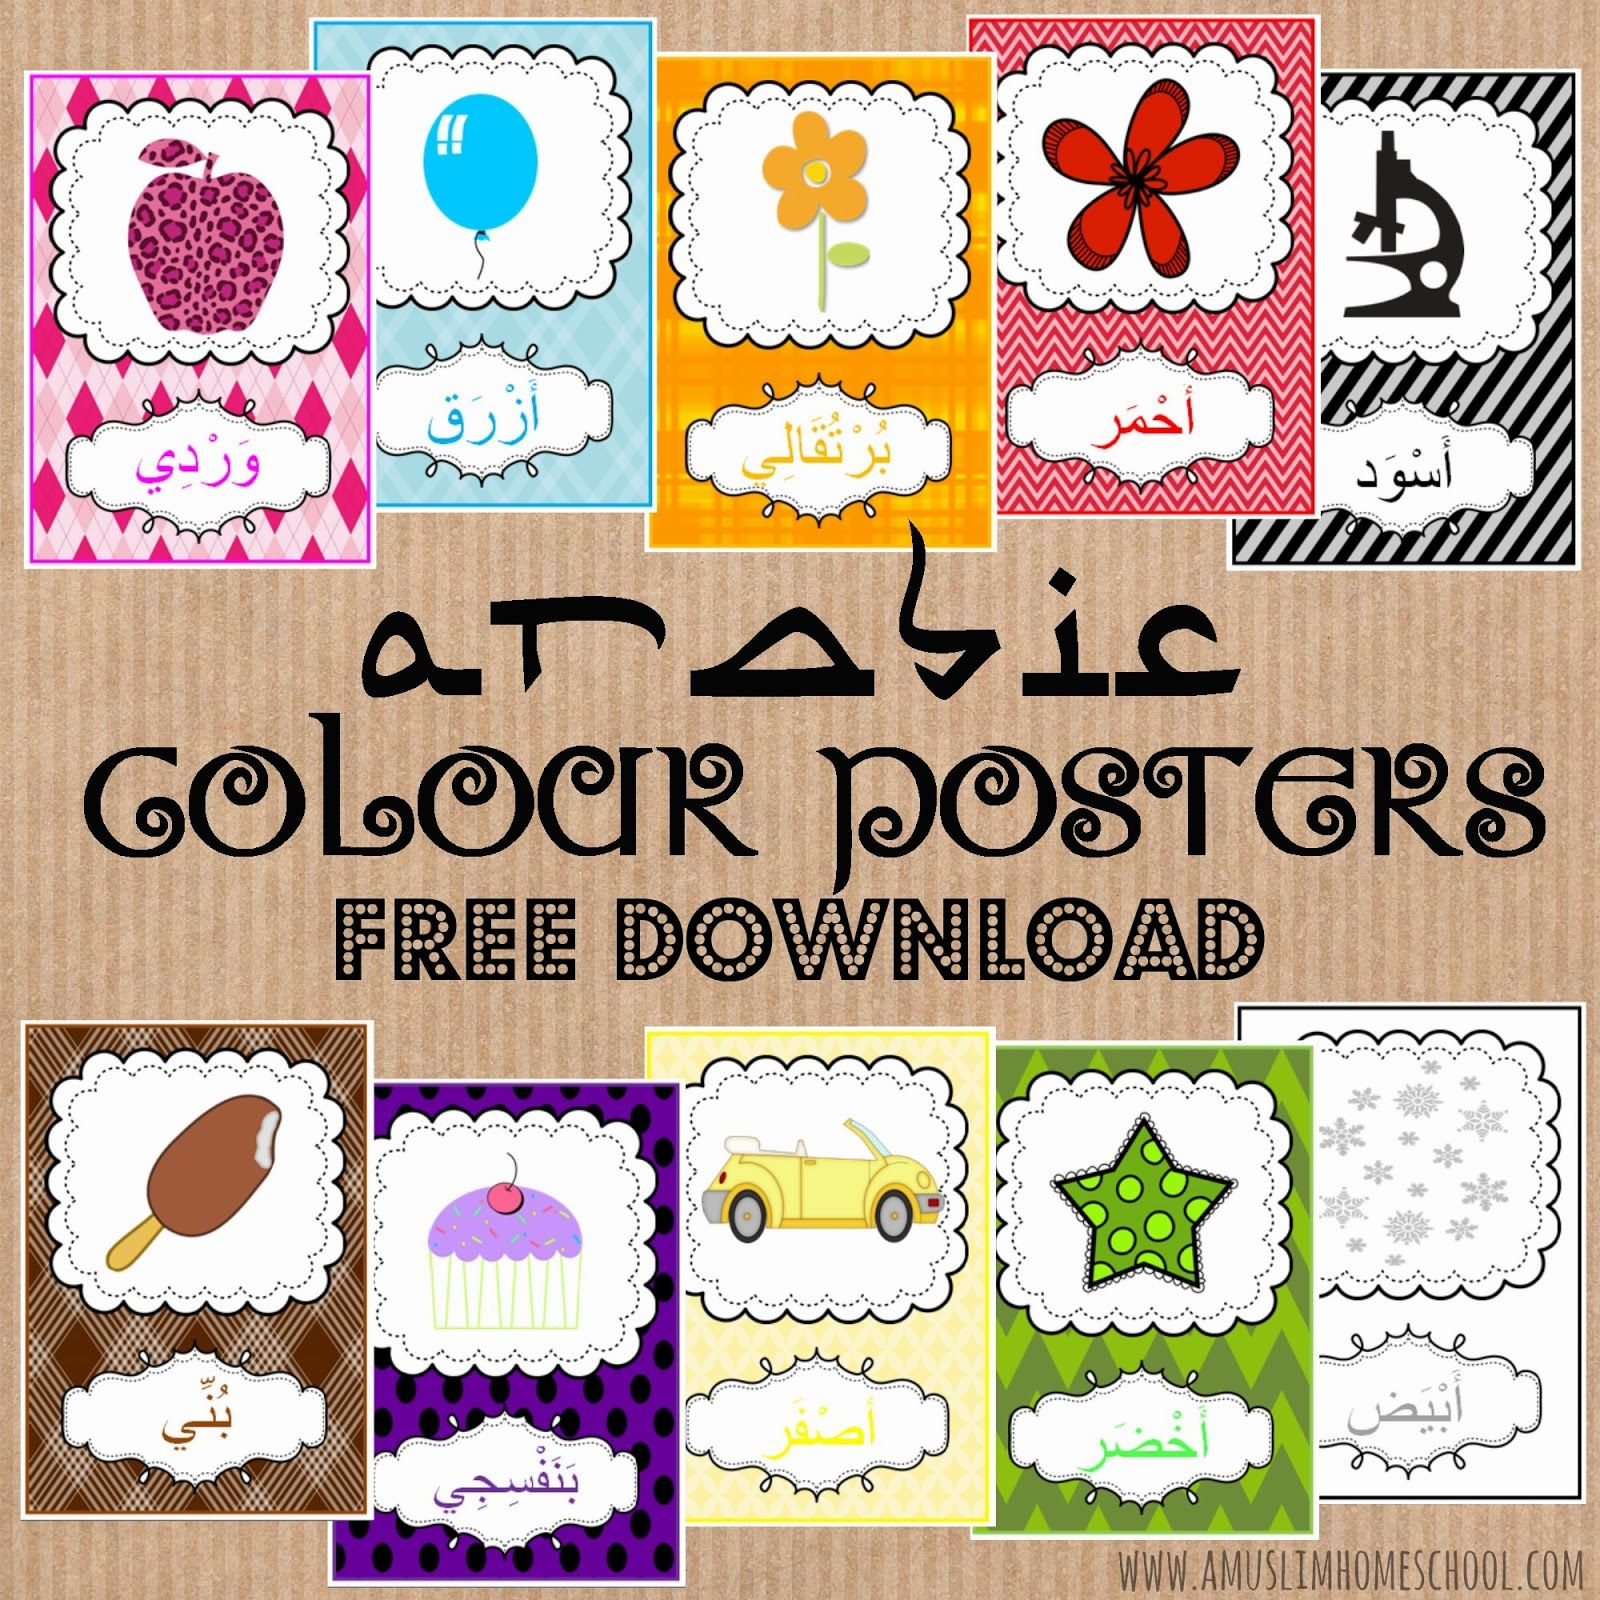 Printable Arabic Colour Posters